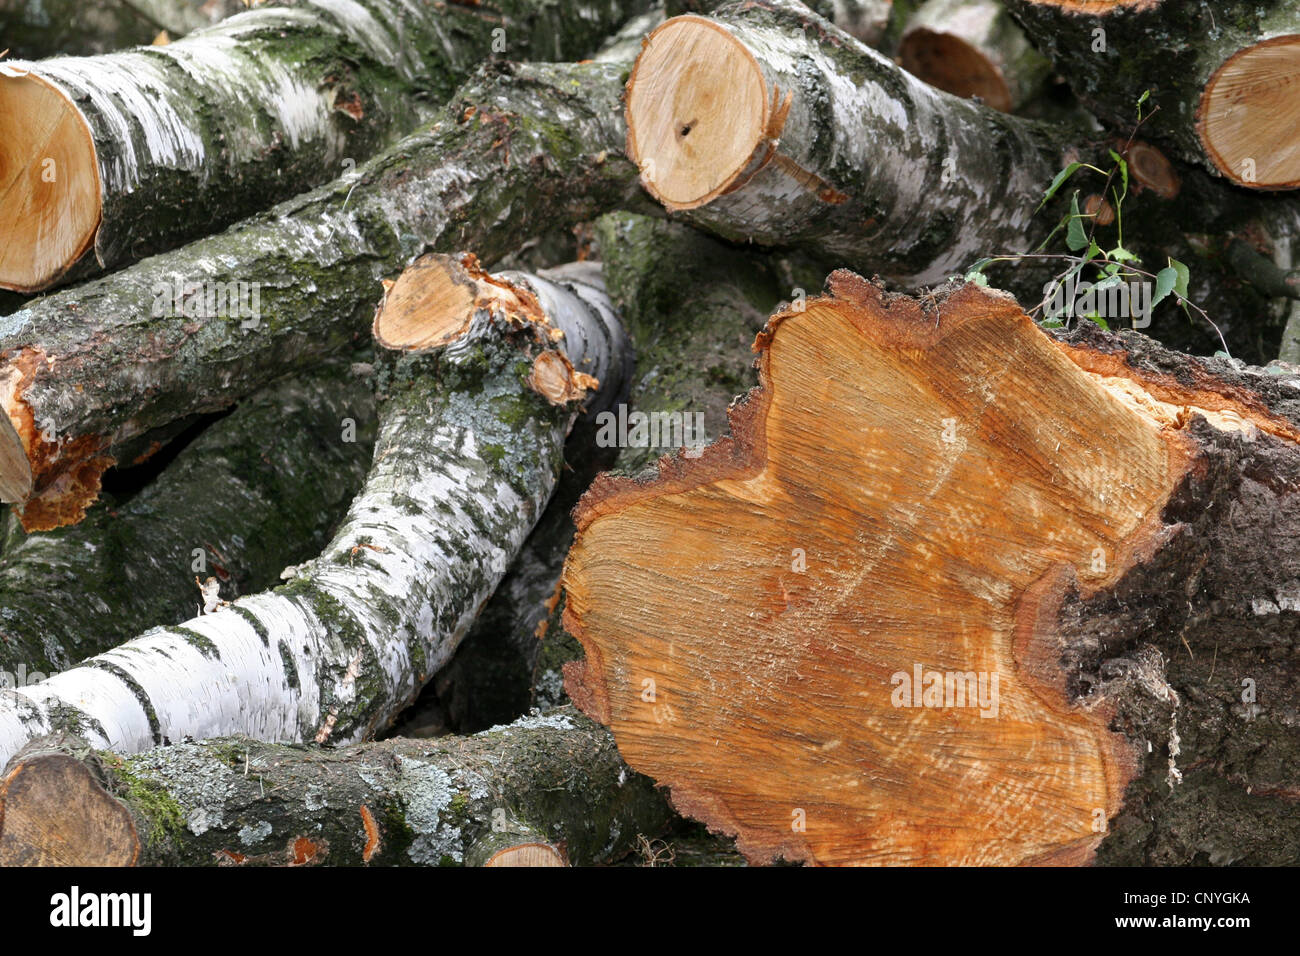 felled birch stems, Germany, North Rhine-Westphalia - Stock Image